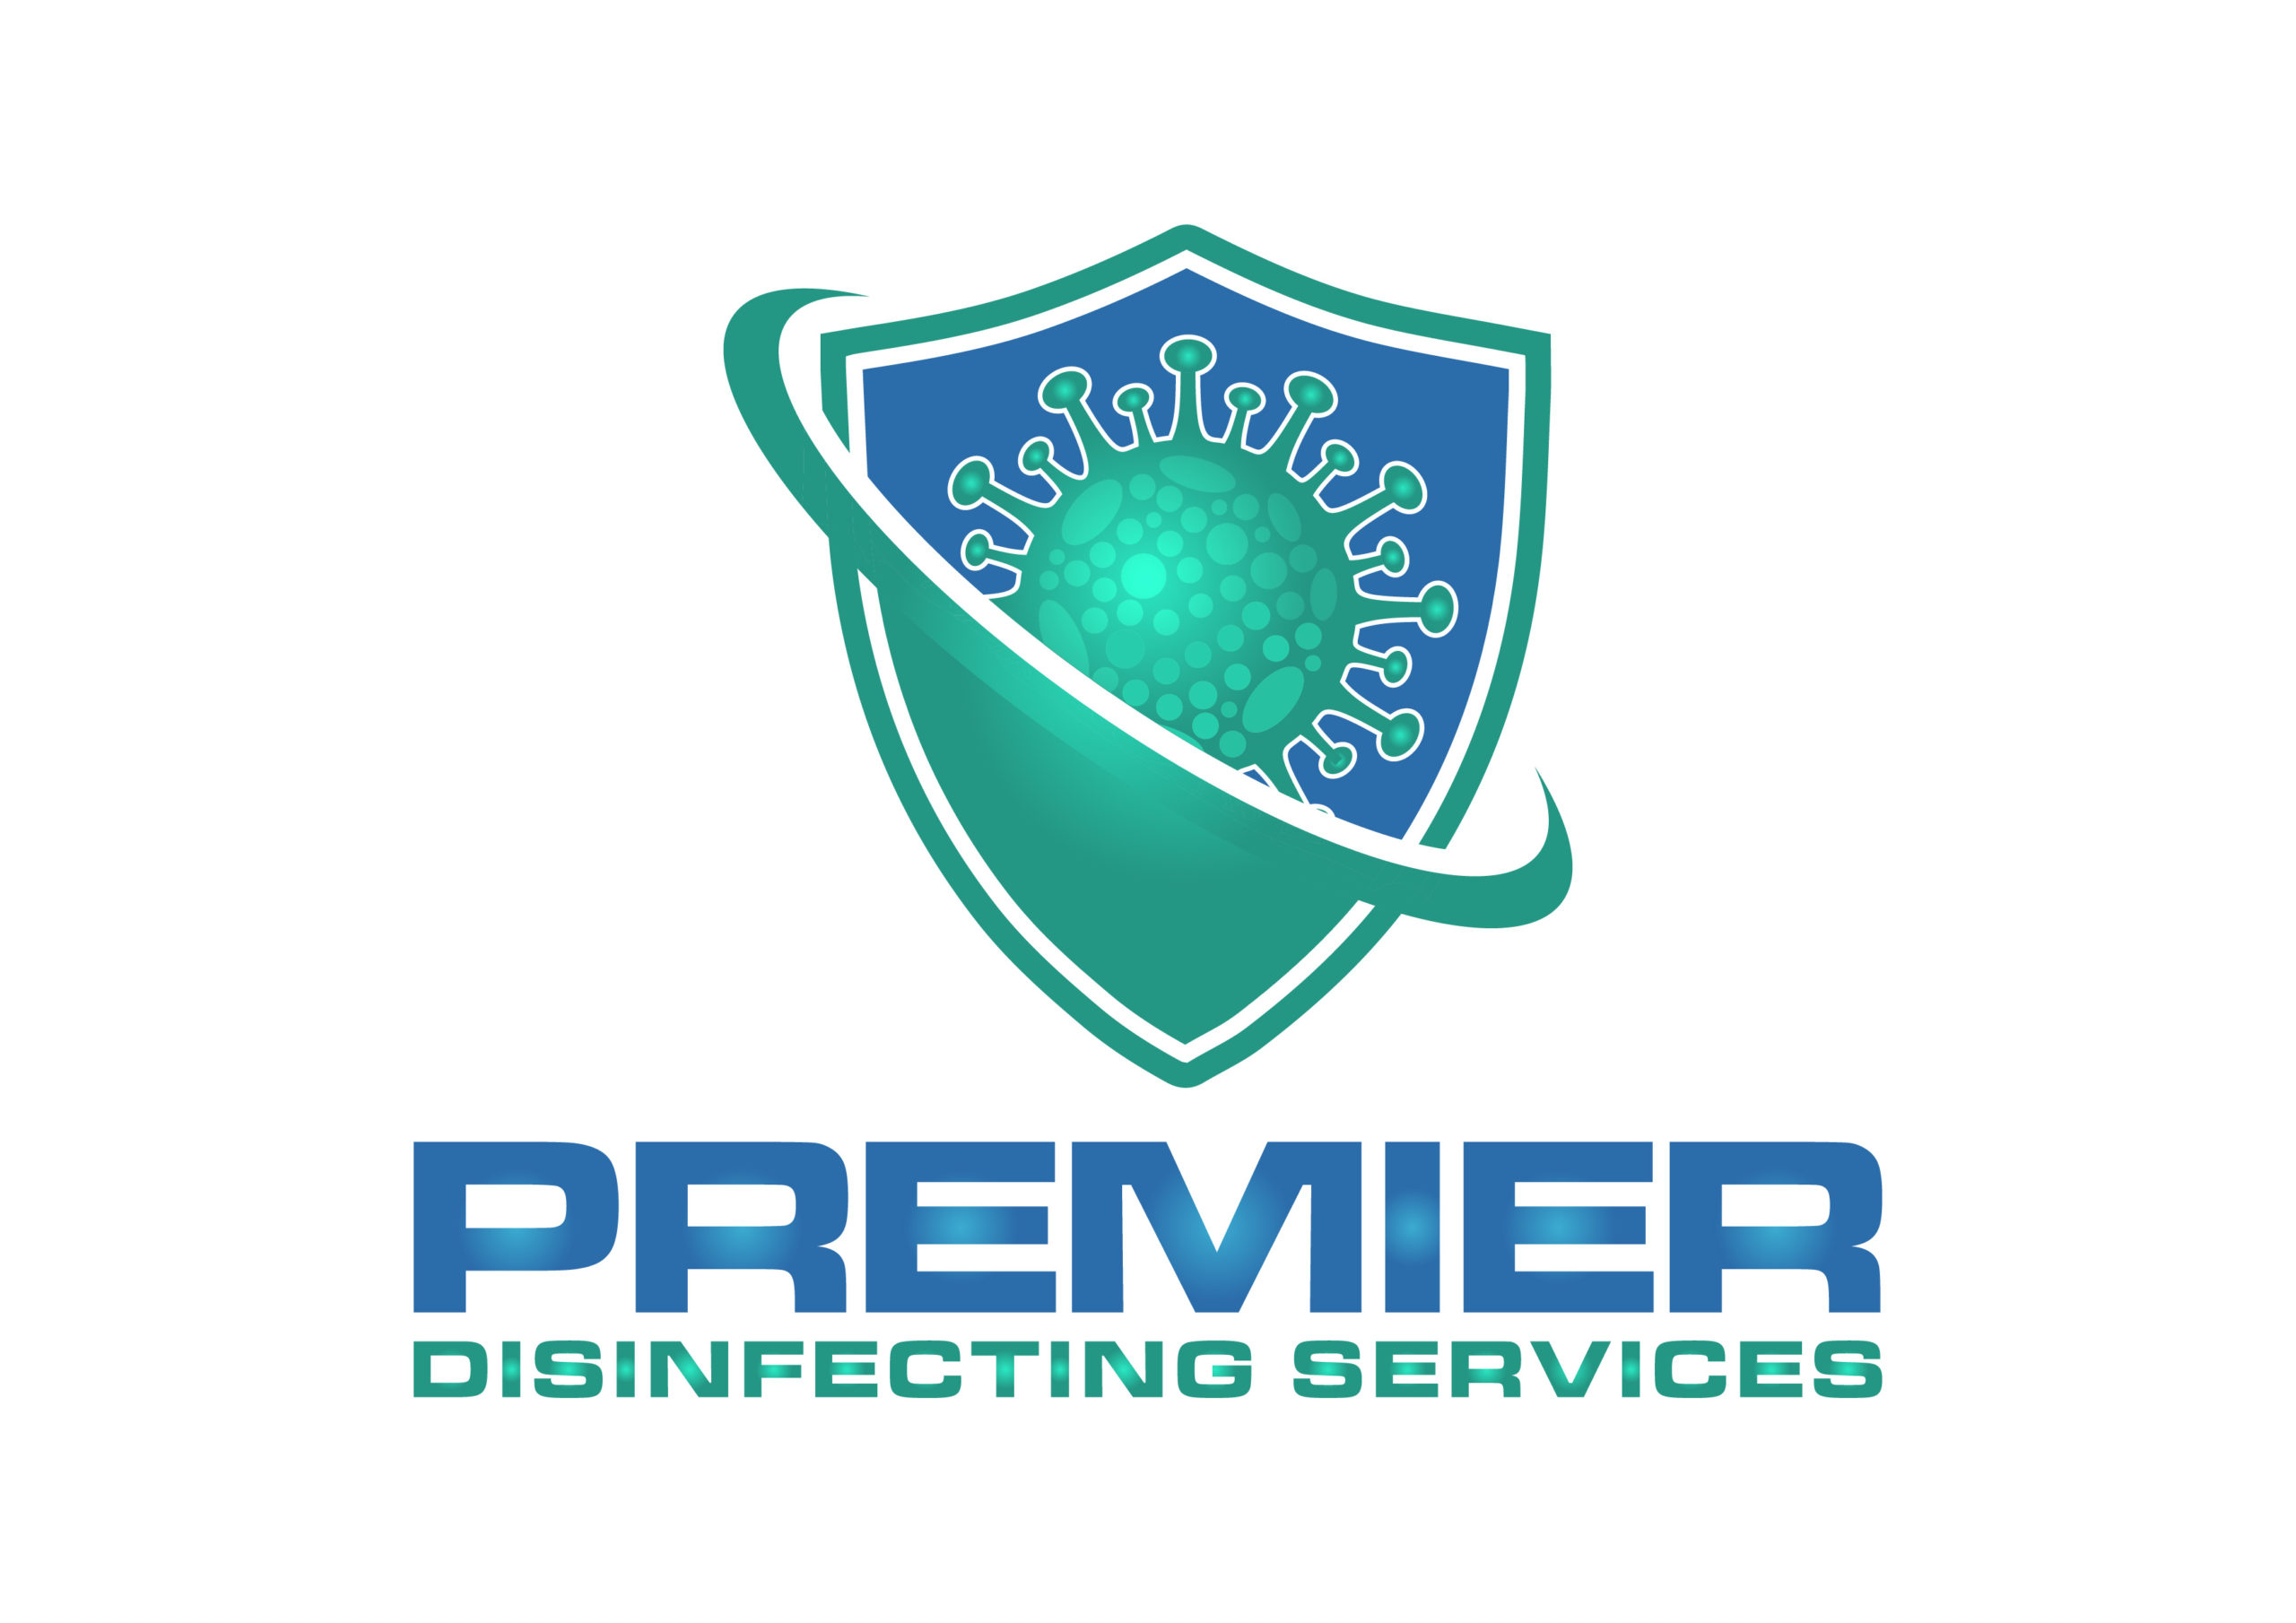 Premier Disinfecting Services Orlando